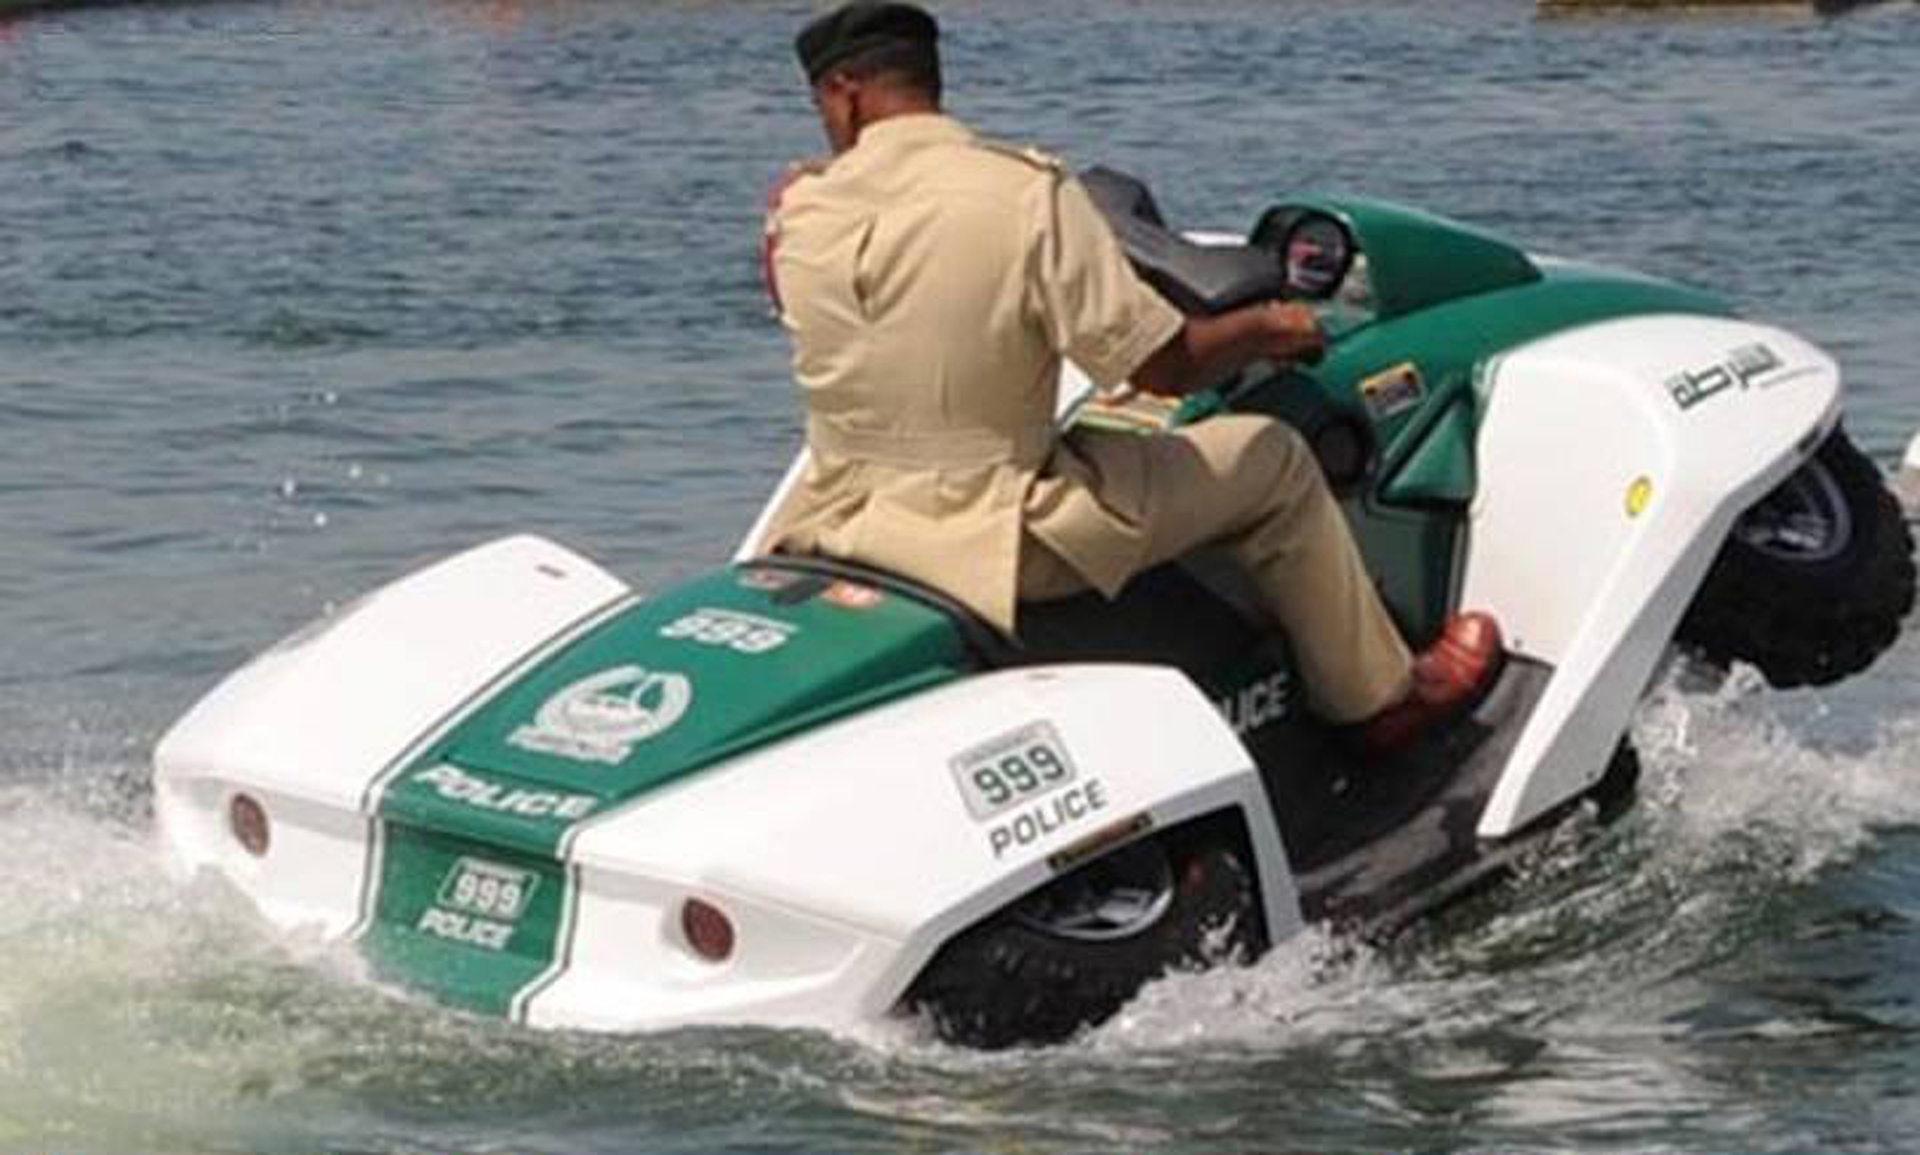 Dubai Police Added a Quadski to its Supercar Fleet